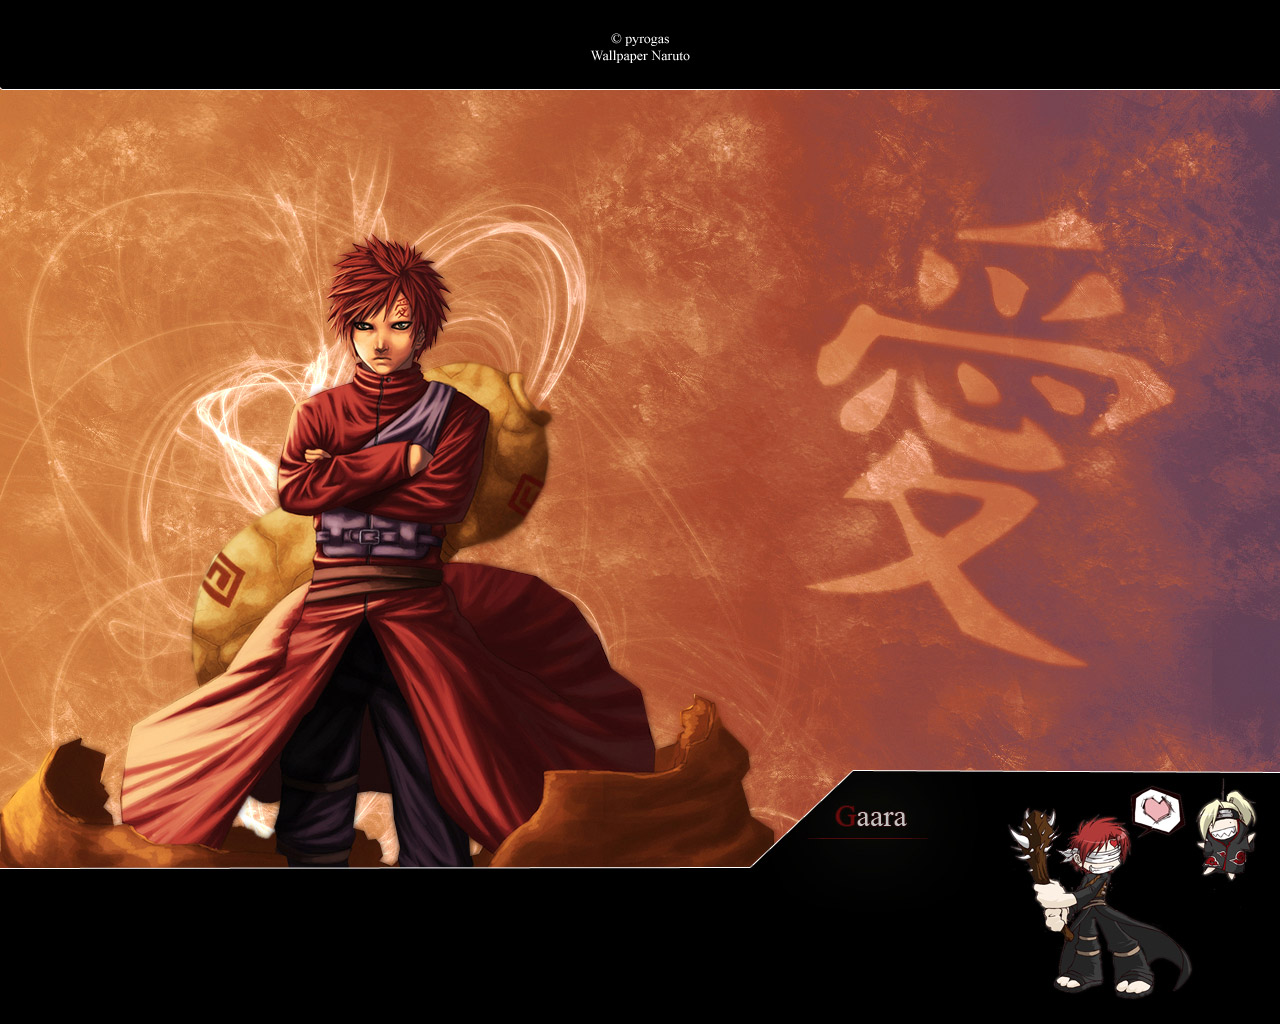 Gaara Naruto Wallpaper 1280x1024